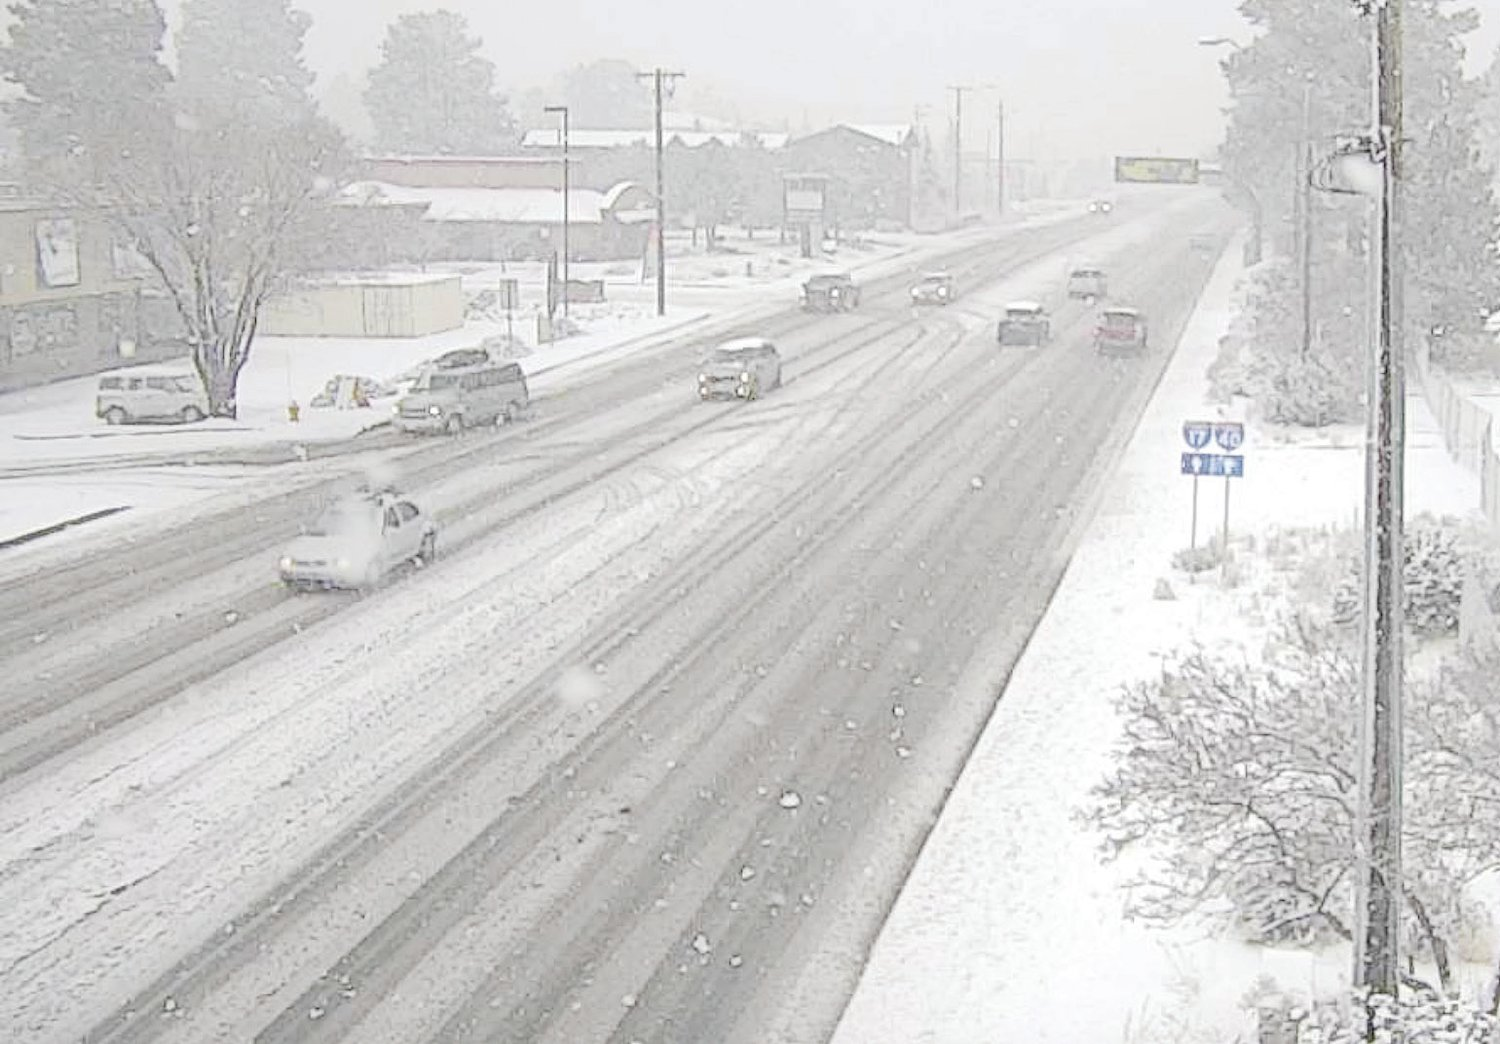 Snow falls on a roadway near Flagstaff in this webcam image. [Courtesy of ADOT]